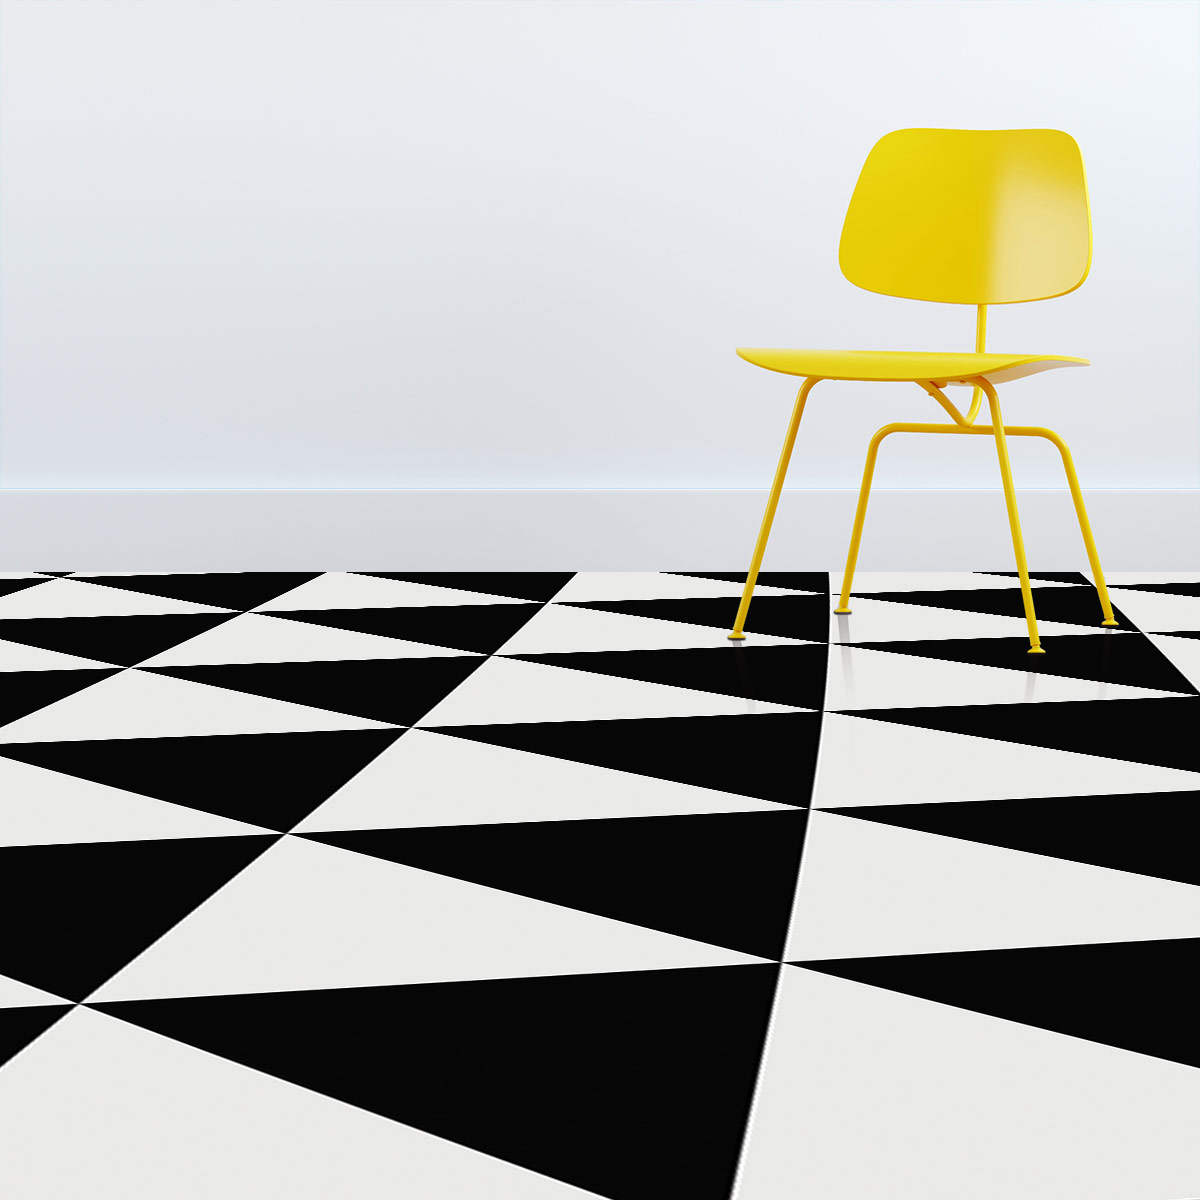 Image showing a bright yellow chair on top of black and white triangle vinyl flooring from forthefloorandmore.com